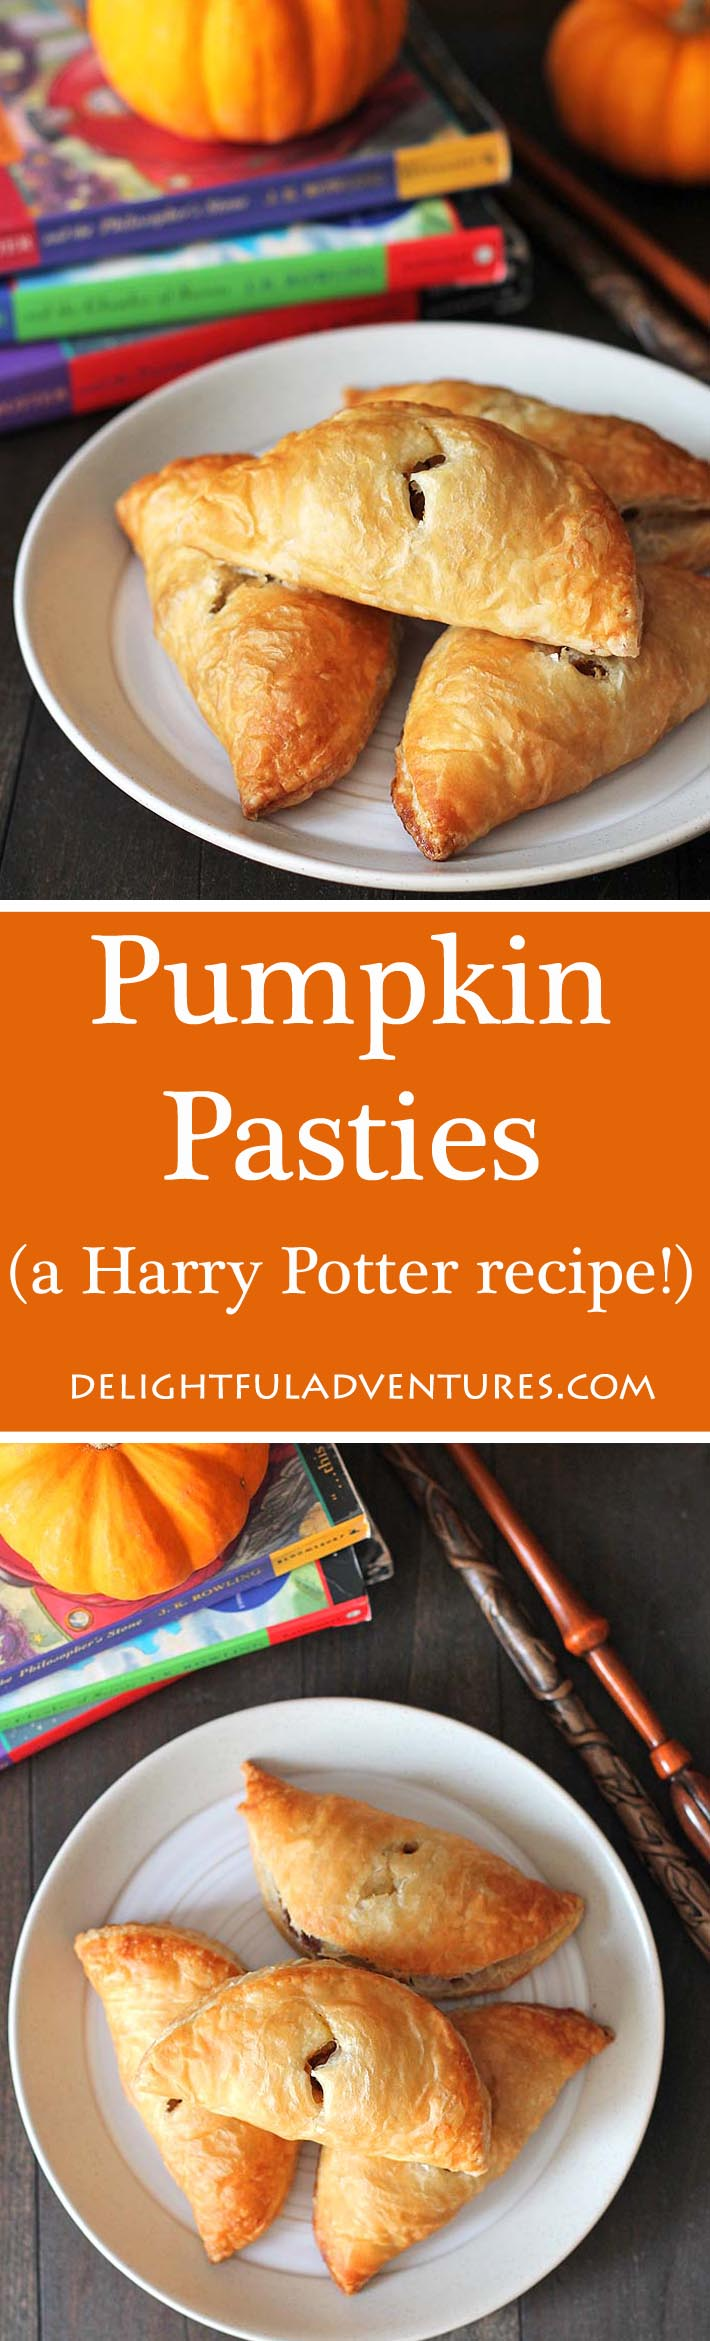 Curious about what pumpkin pasties from the